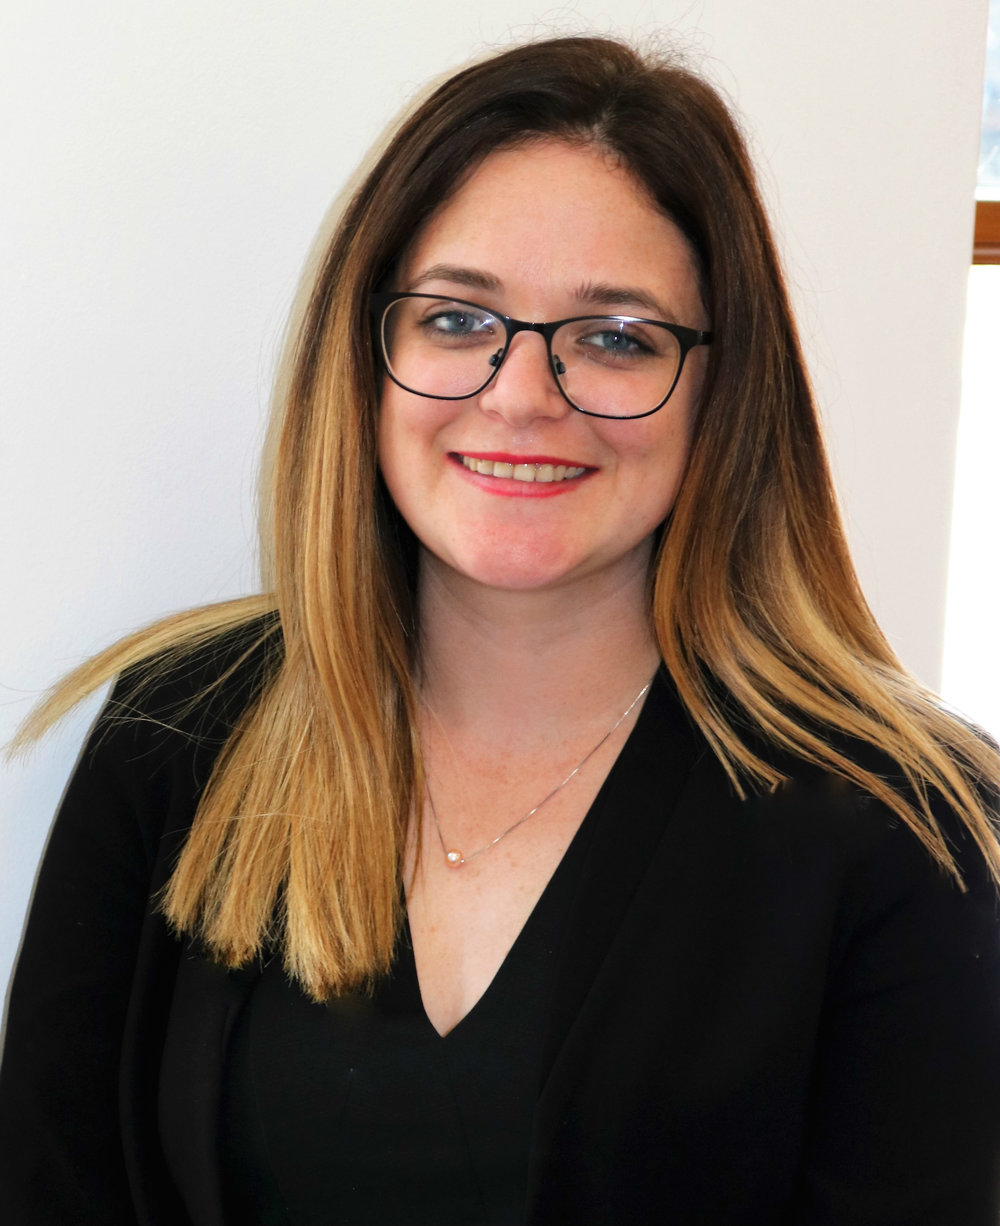 Roisin Hocking, Legal Assistant   Roisin joined Pinel Advocates from Mourant. She deals with corporate and commercial matters, including legal opinions, banking and finance work.